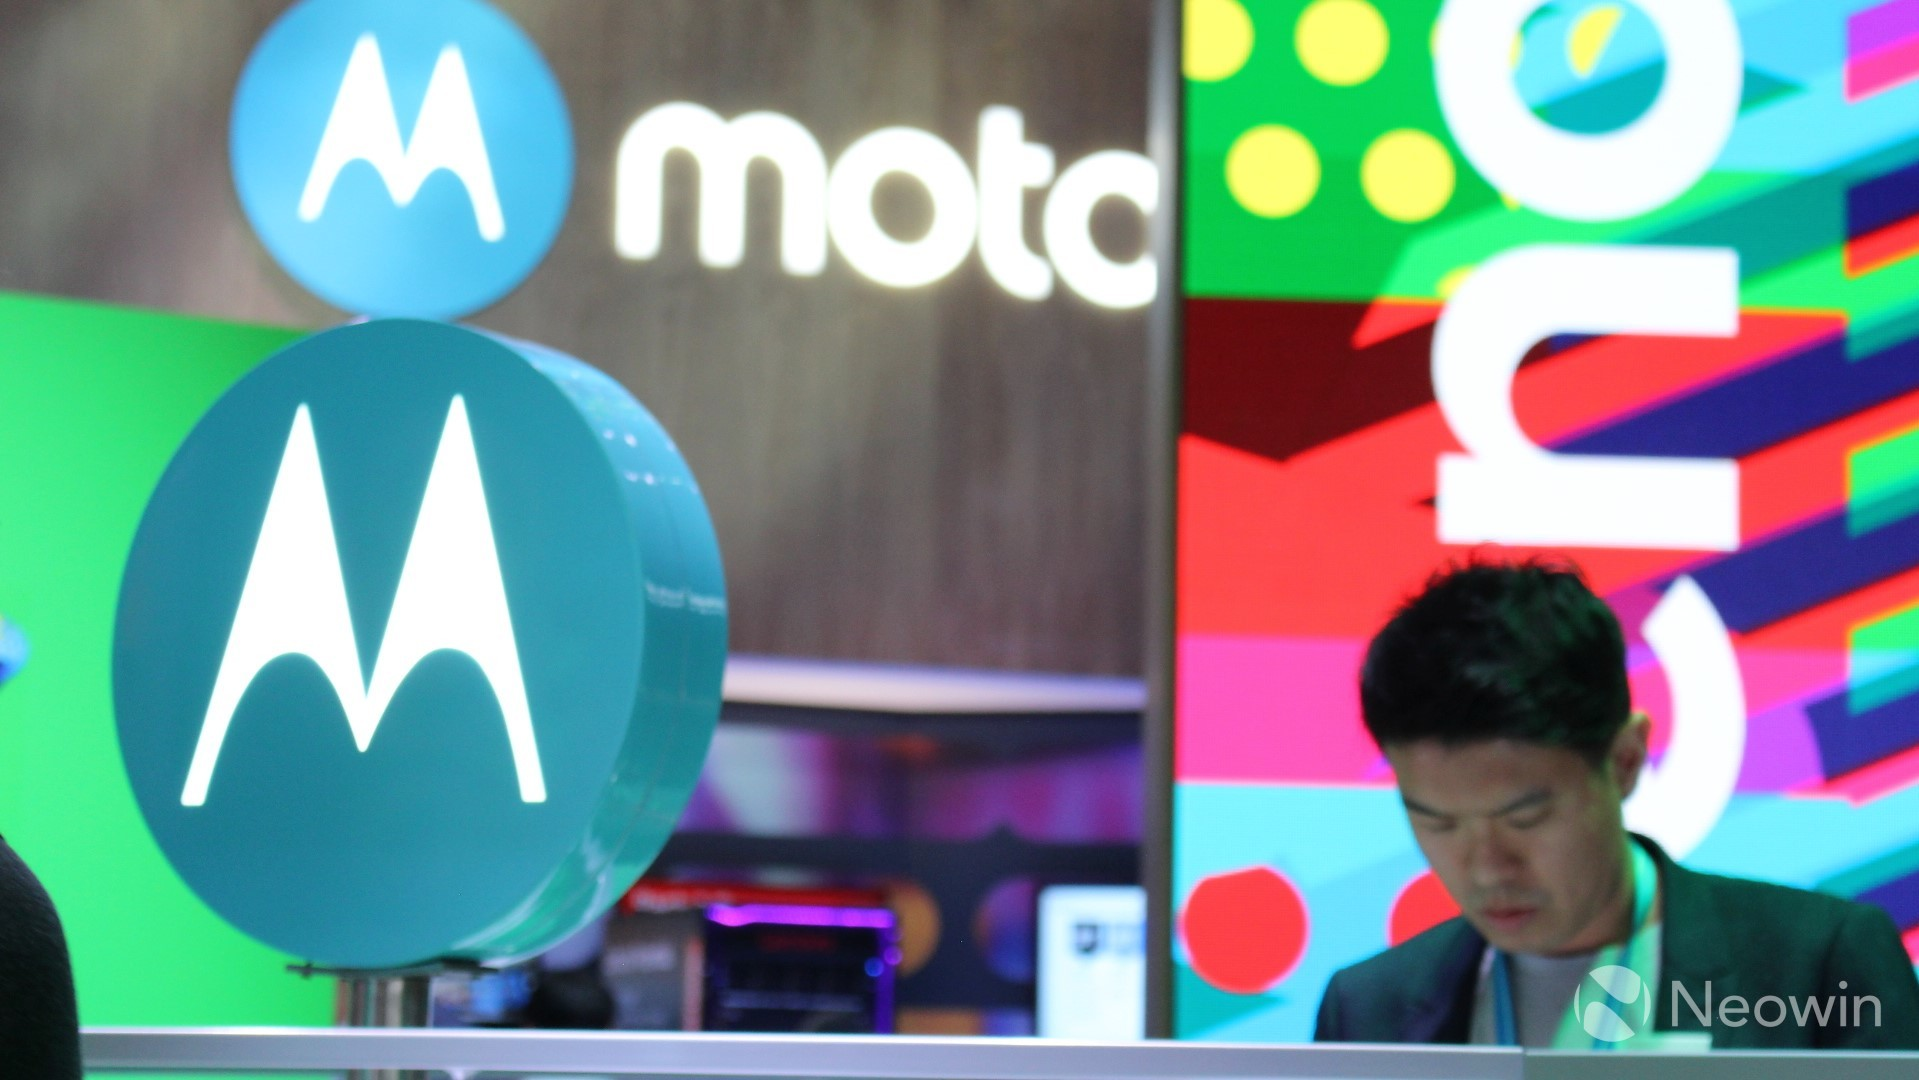 Motorola could soon be launching a Moto tablet